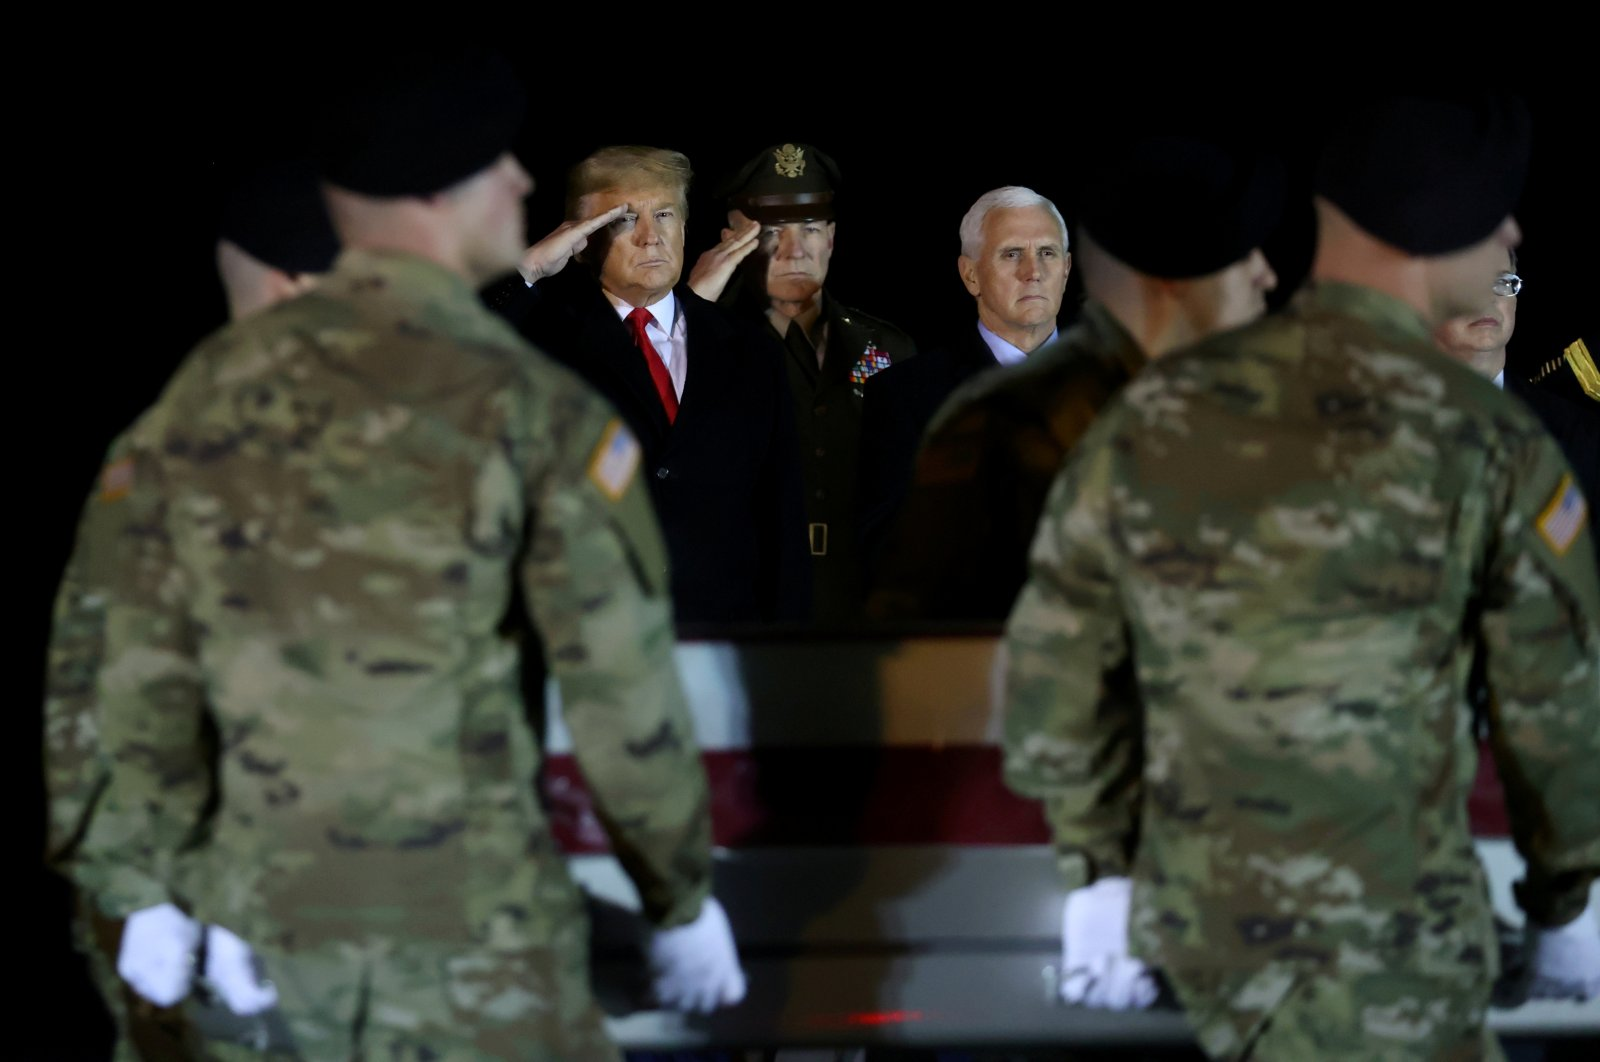 U.S. President Donald Trump salutes the transfer cases holding the remains of U.S. Army soldier Sergeant Javier Jaguar Gutierrez, who was killed in the Nangarhar province in eastern Afghanistan, during a dignified transfer at Dover Air Force Base, in Dover, Delaware, U.S. Feb. 10, 2020. (REUTERS Photo)